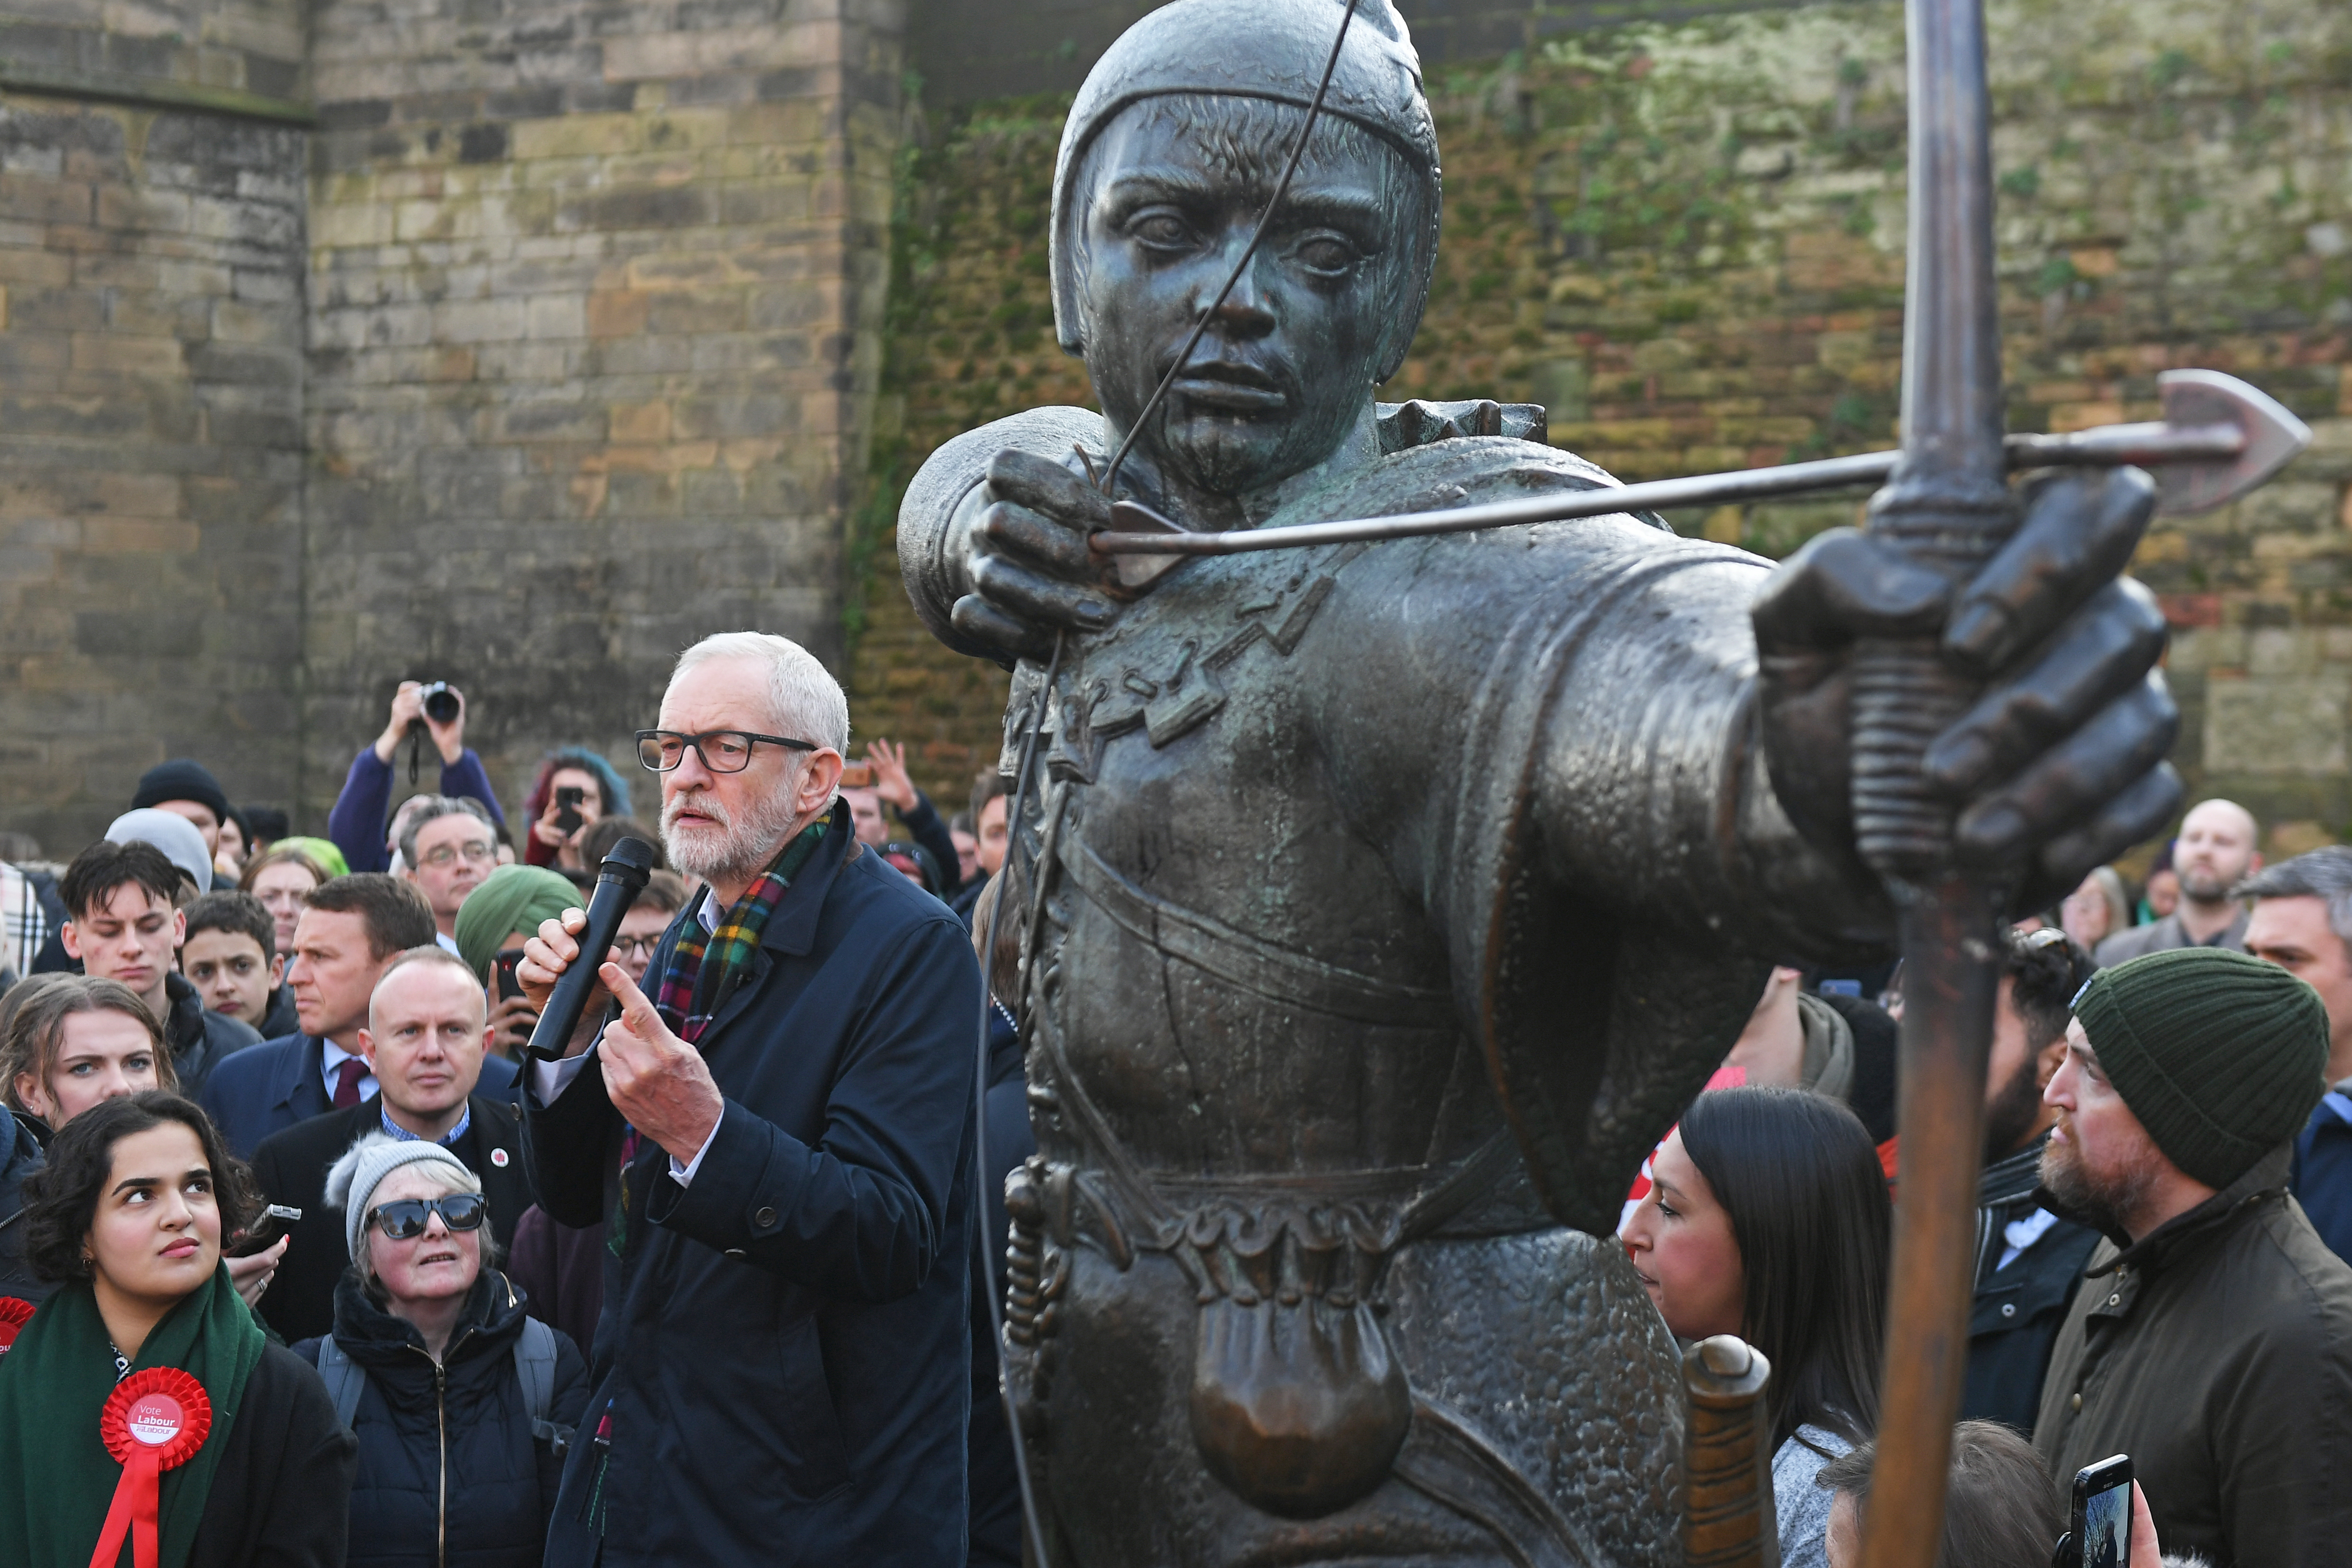 Labour leader Jeremy Corbyn speaks to a crowd of supporters next to a statue of Robin Hood in Nottingham, while on the General Election campaign trail.